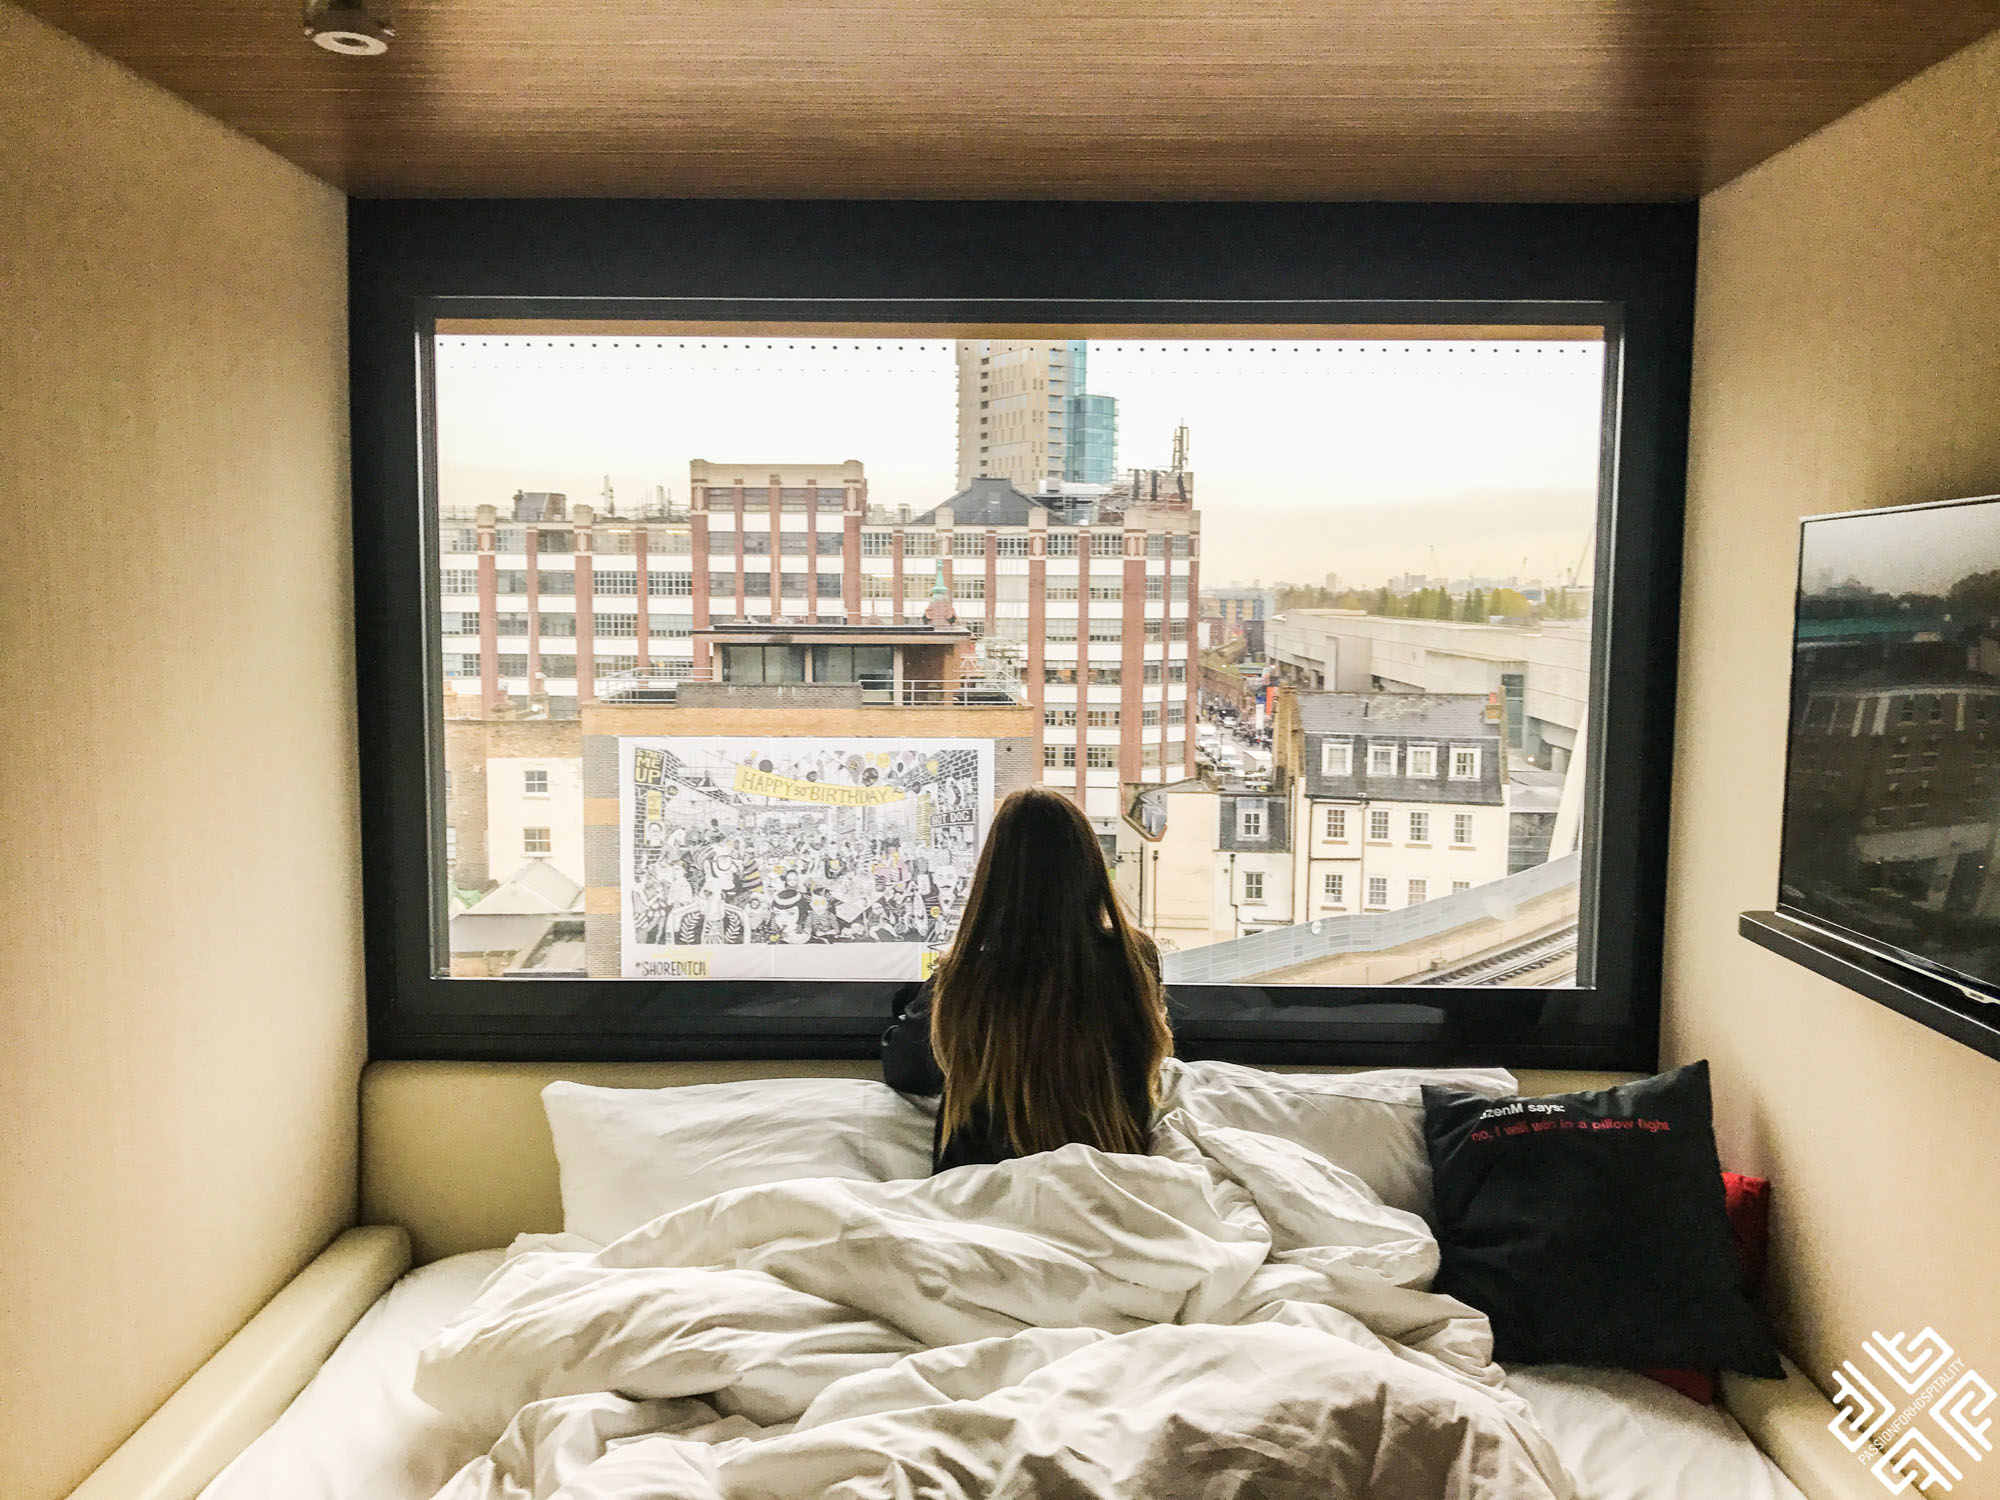 CitizenM London Shoreditch Hotel: The Future Of Hospitality   Passion For  Hospitality